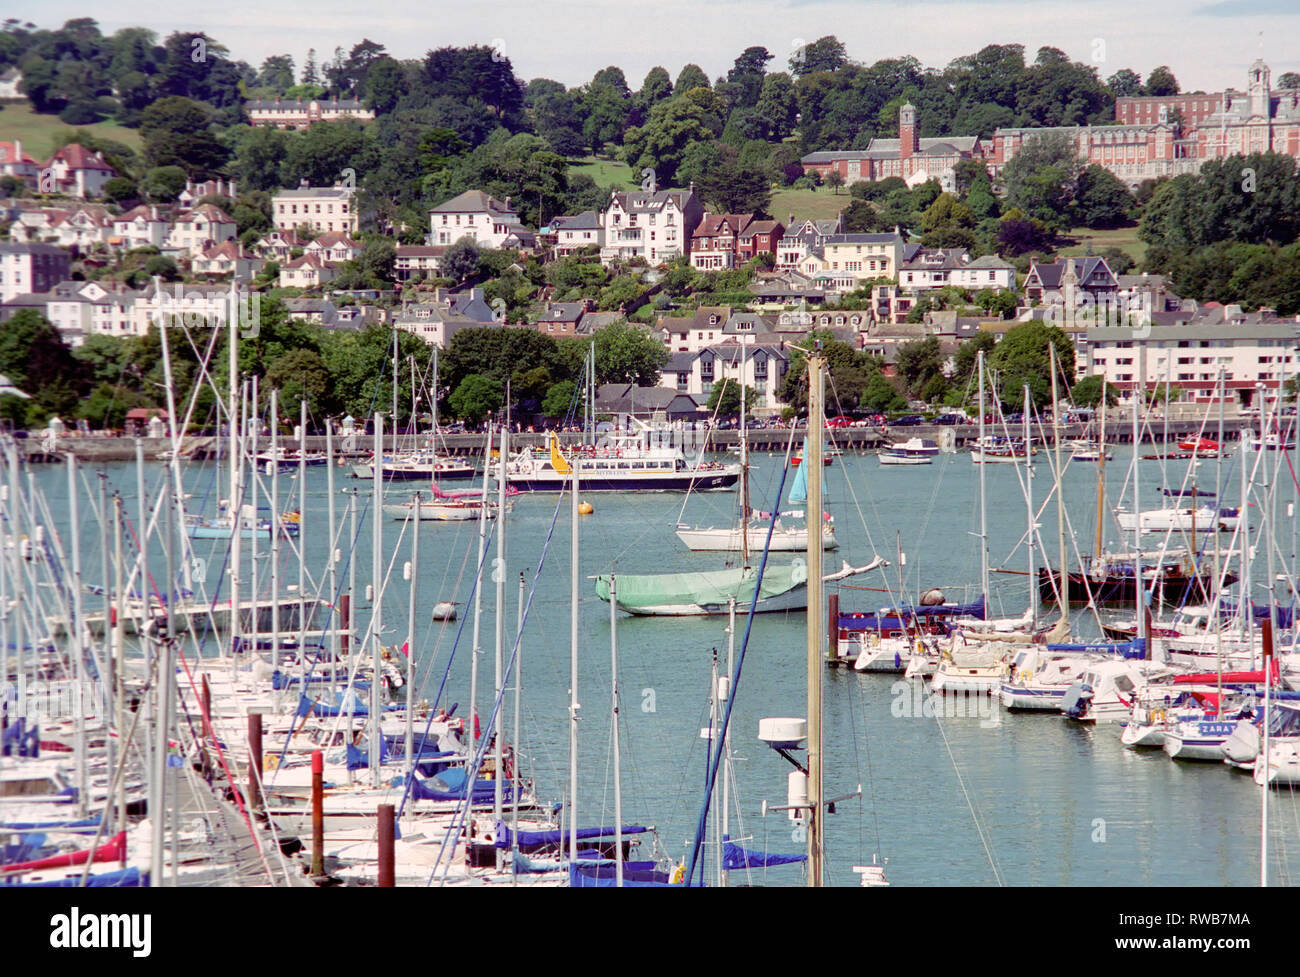 Yachts at Dartmouth, Devon in England Stock Photo